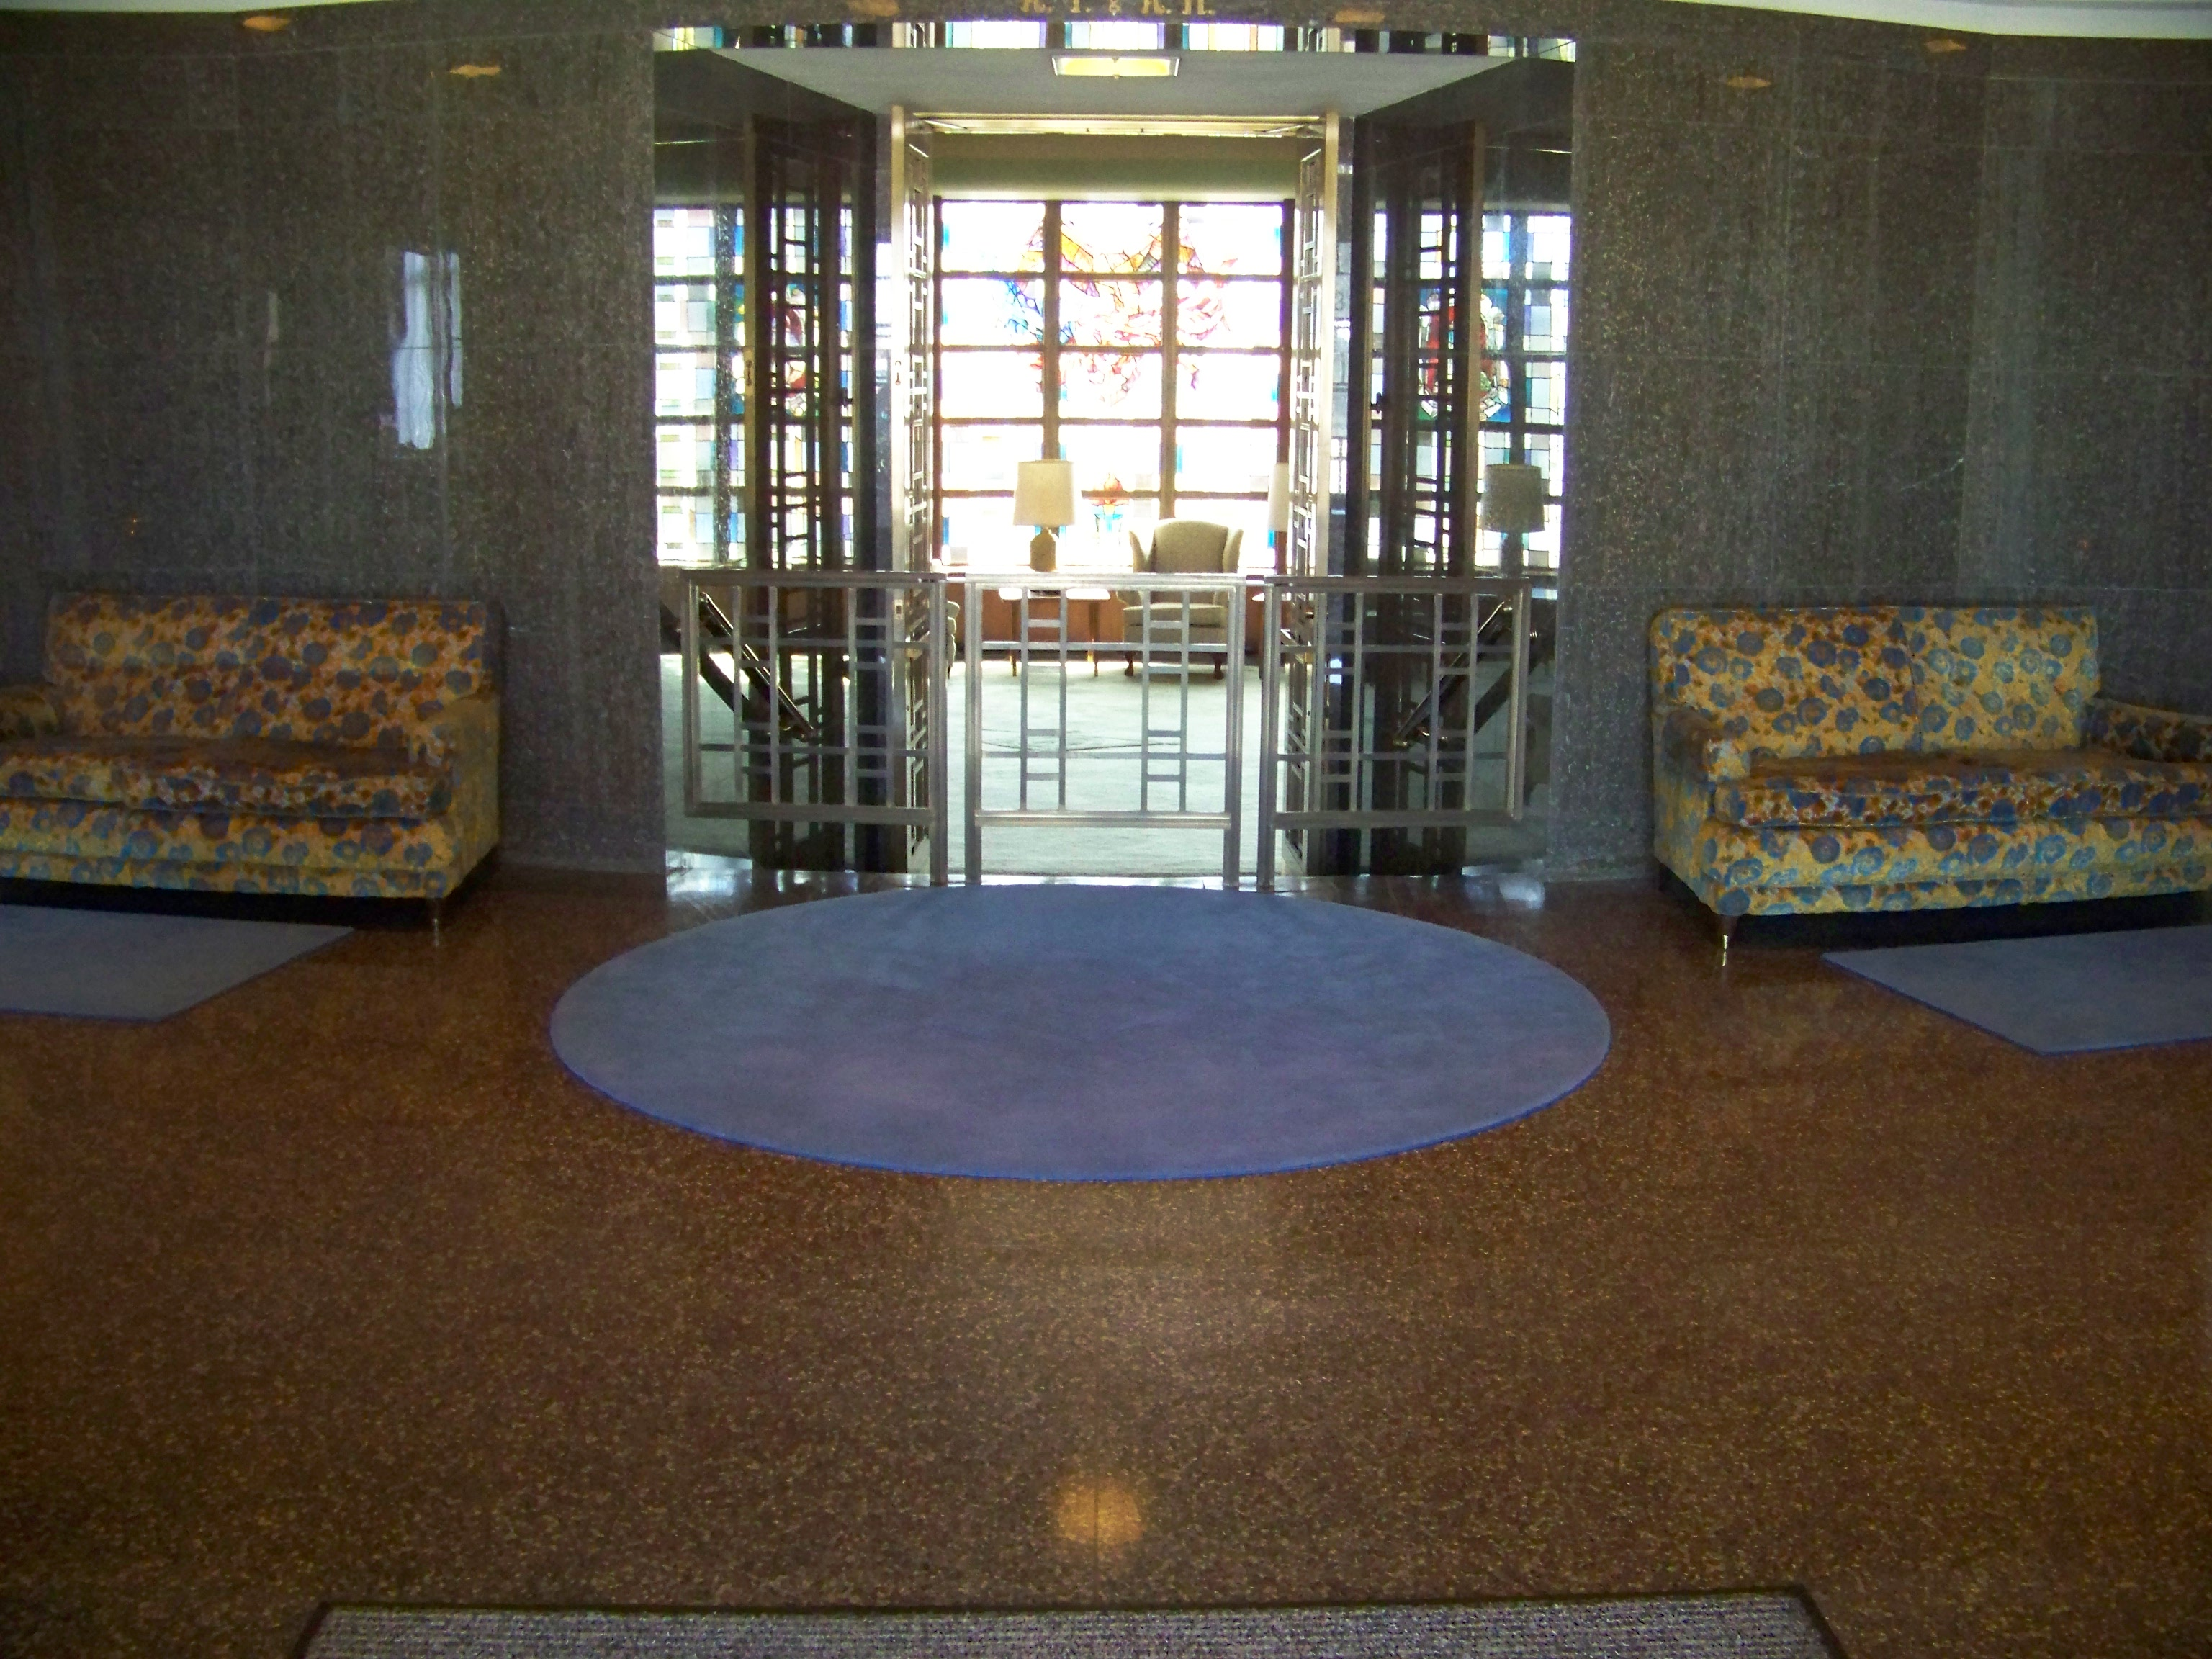 Foyer of the Iowa Masonic Library looking into the War Memorial Room